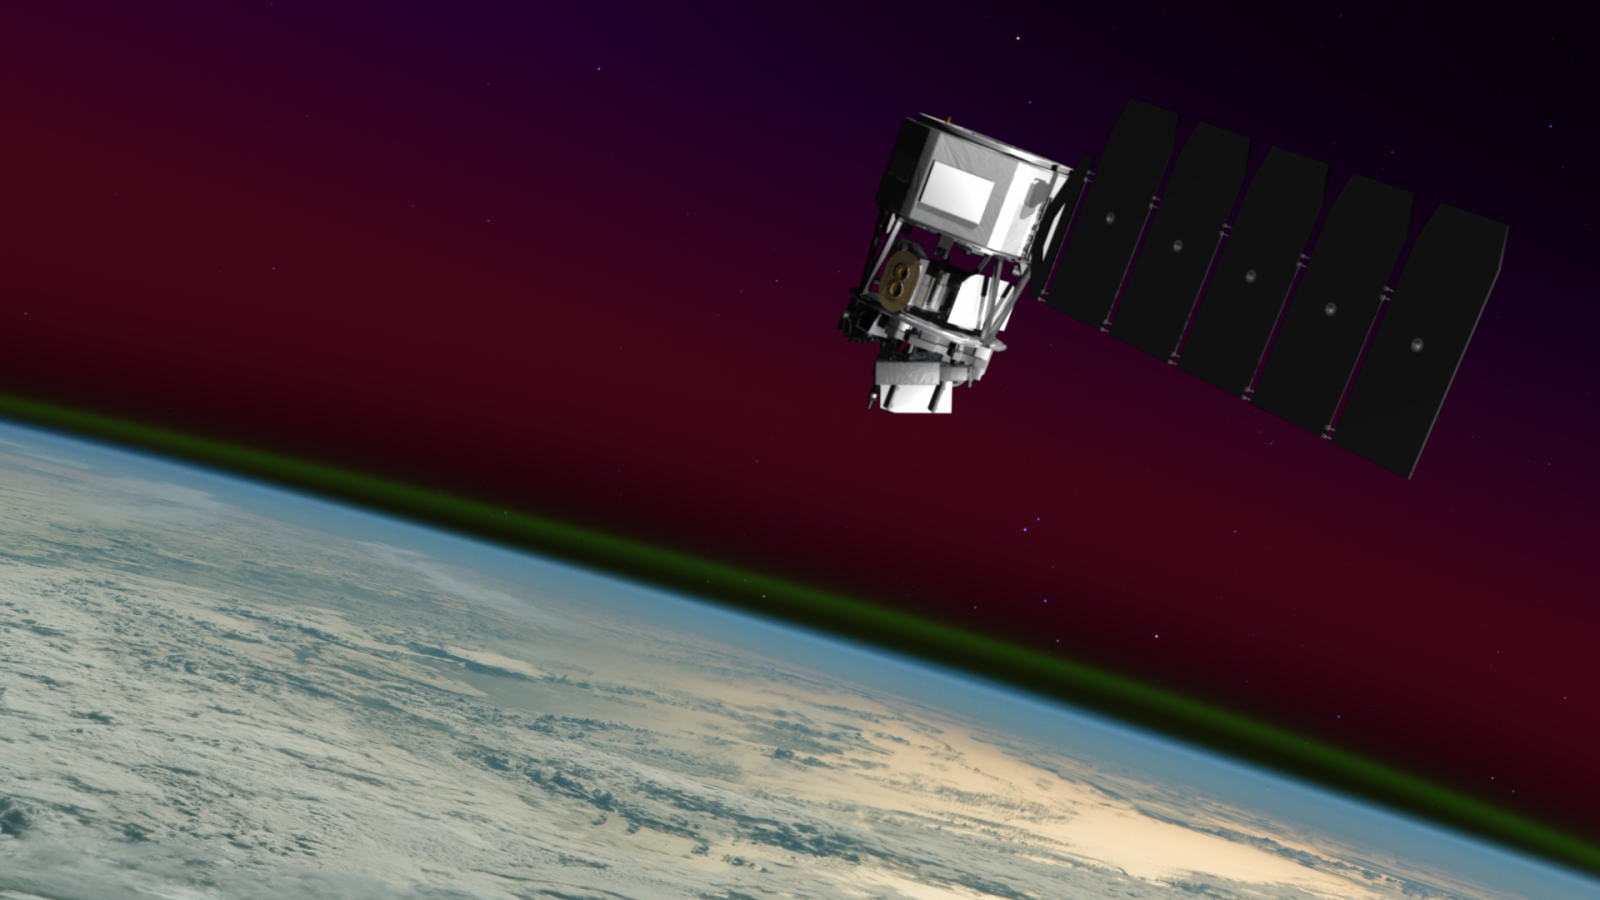 Artist's representation of the ICON spacecraft in orbit. Image Credit: NASA